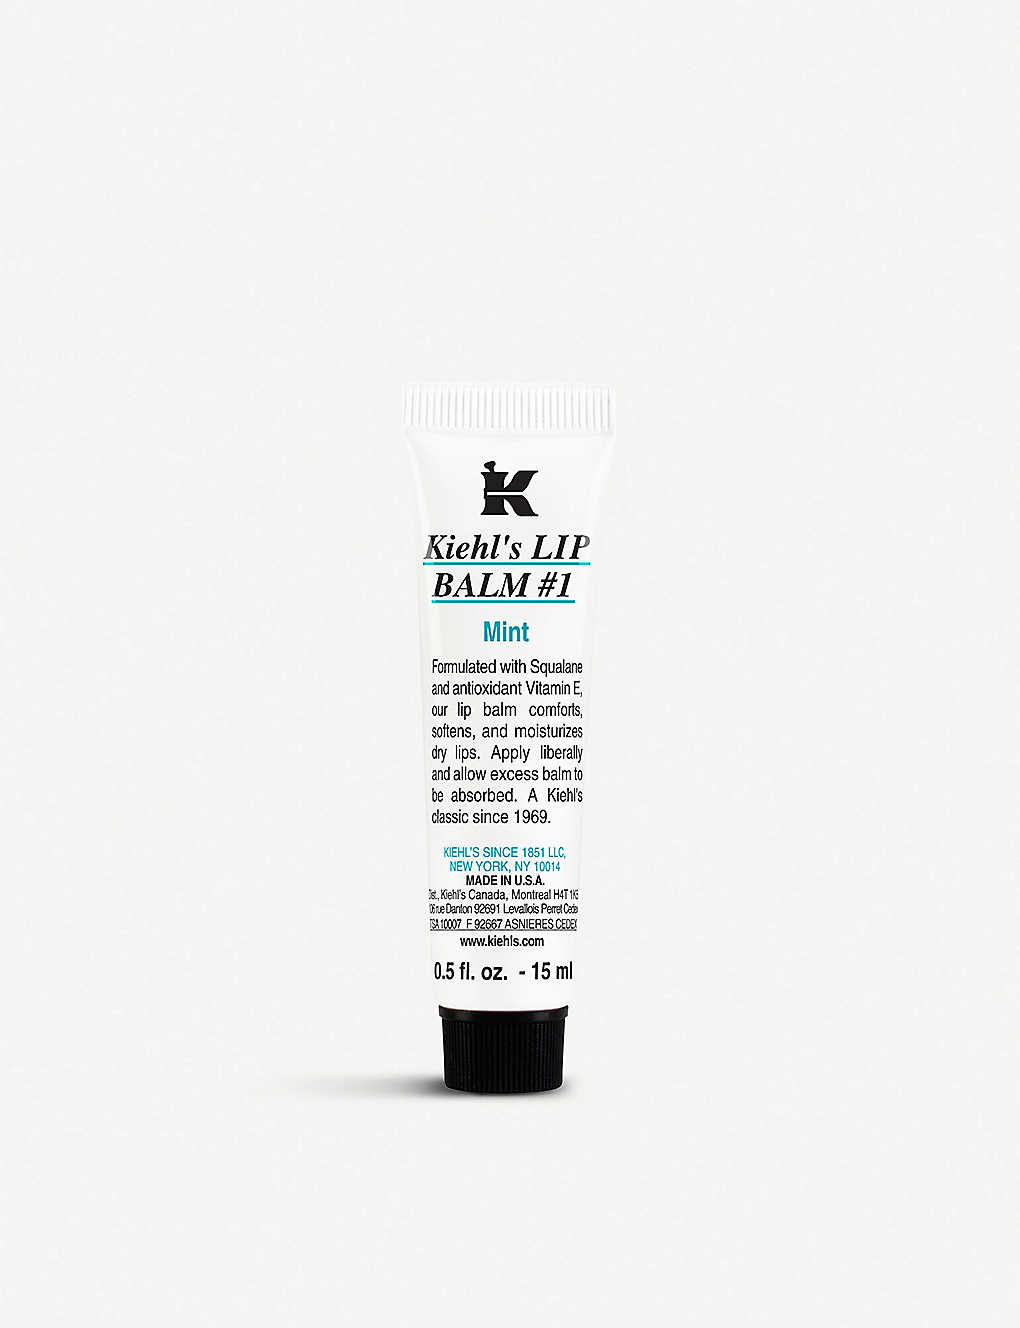 KIEHL'S: Mint lip balm